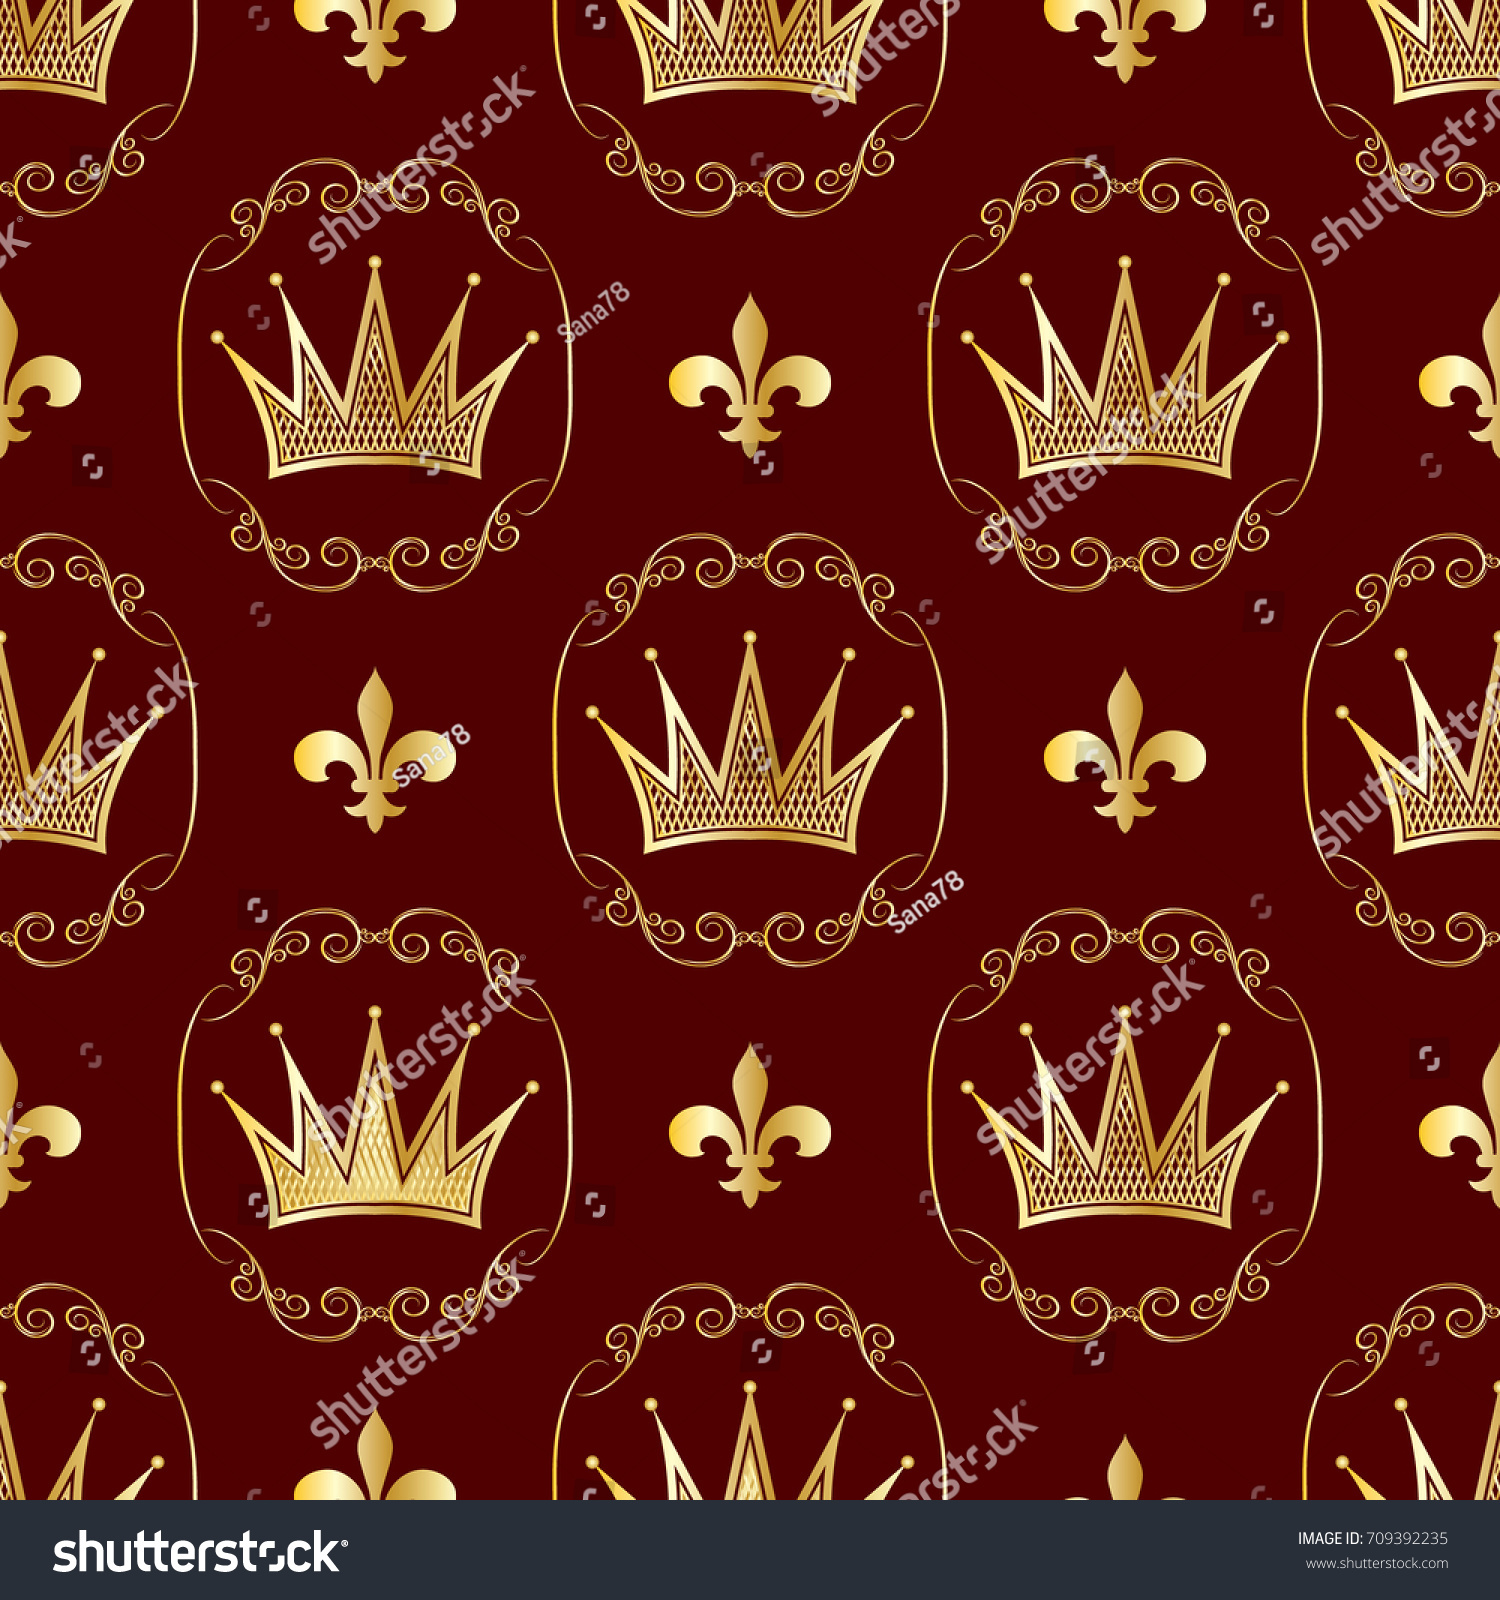 Seamless Pattern Crowns Symbols Royalty Background Stock Vector